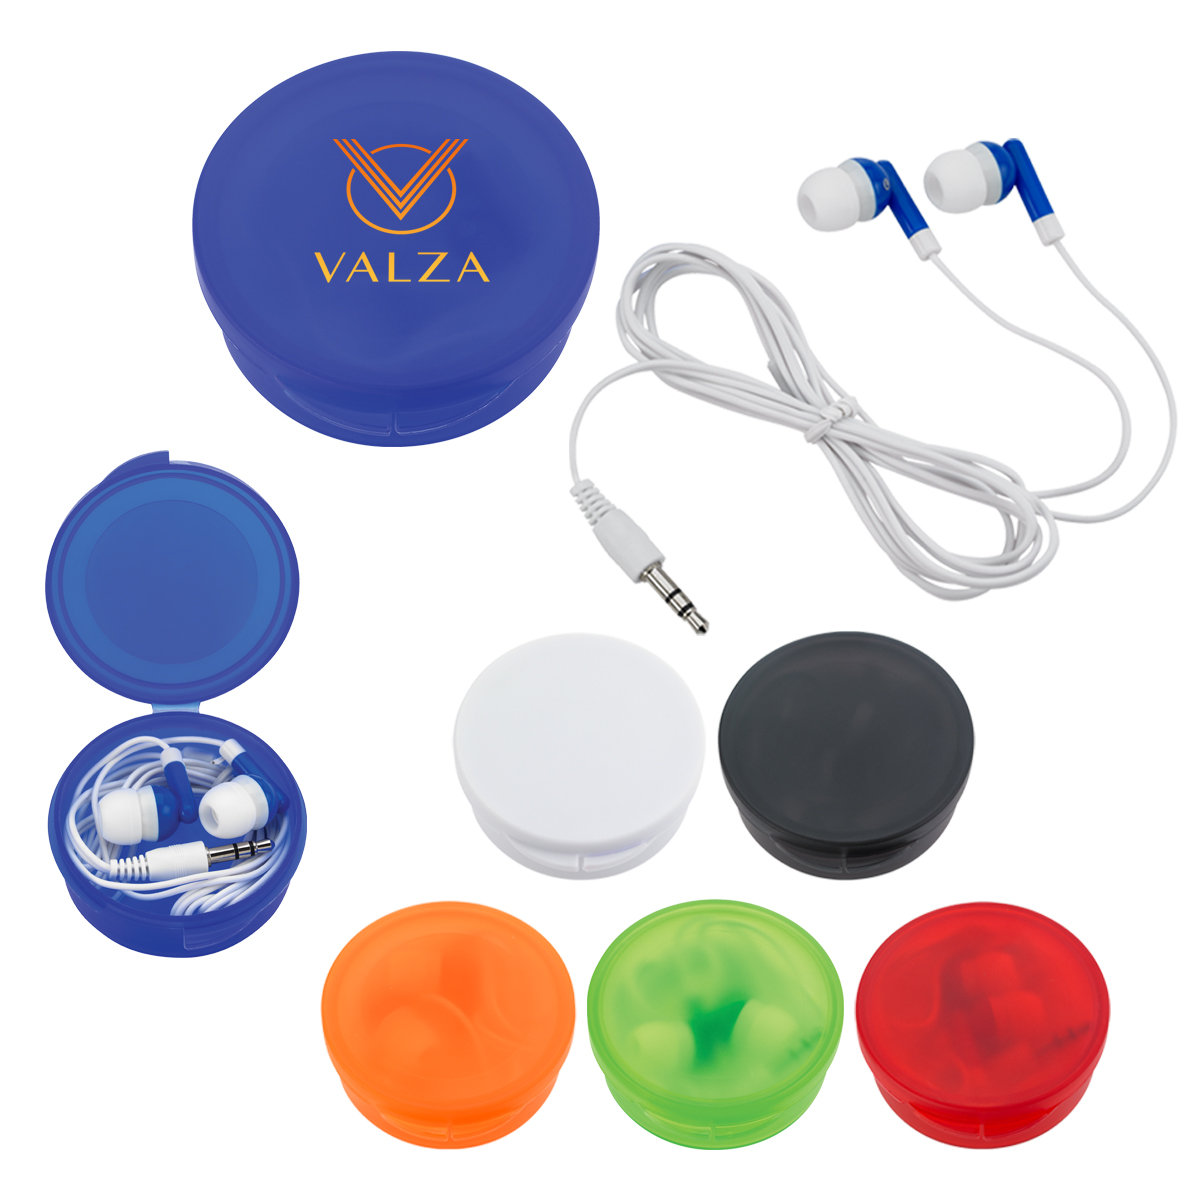 Earbuds / Earbuds Accessories